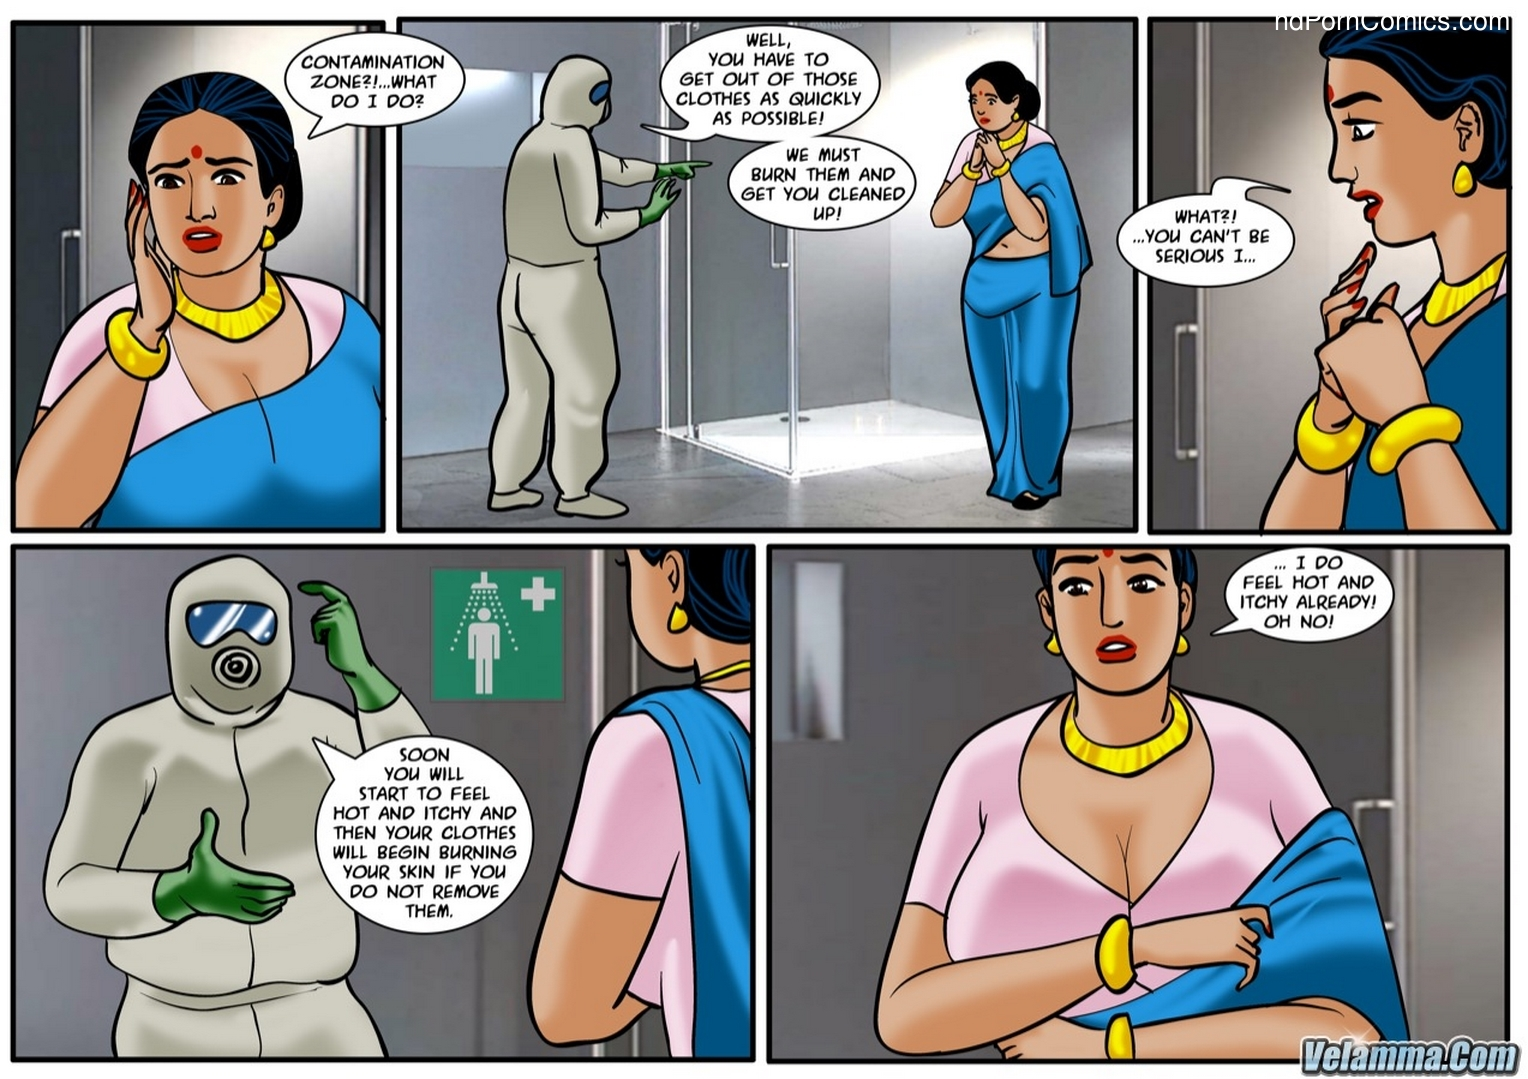 Velamma Episode 58 -Contaminated10 free sex comic